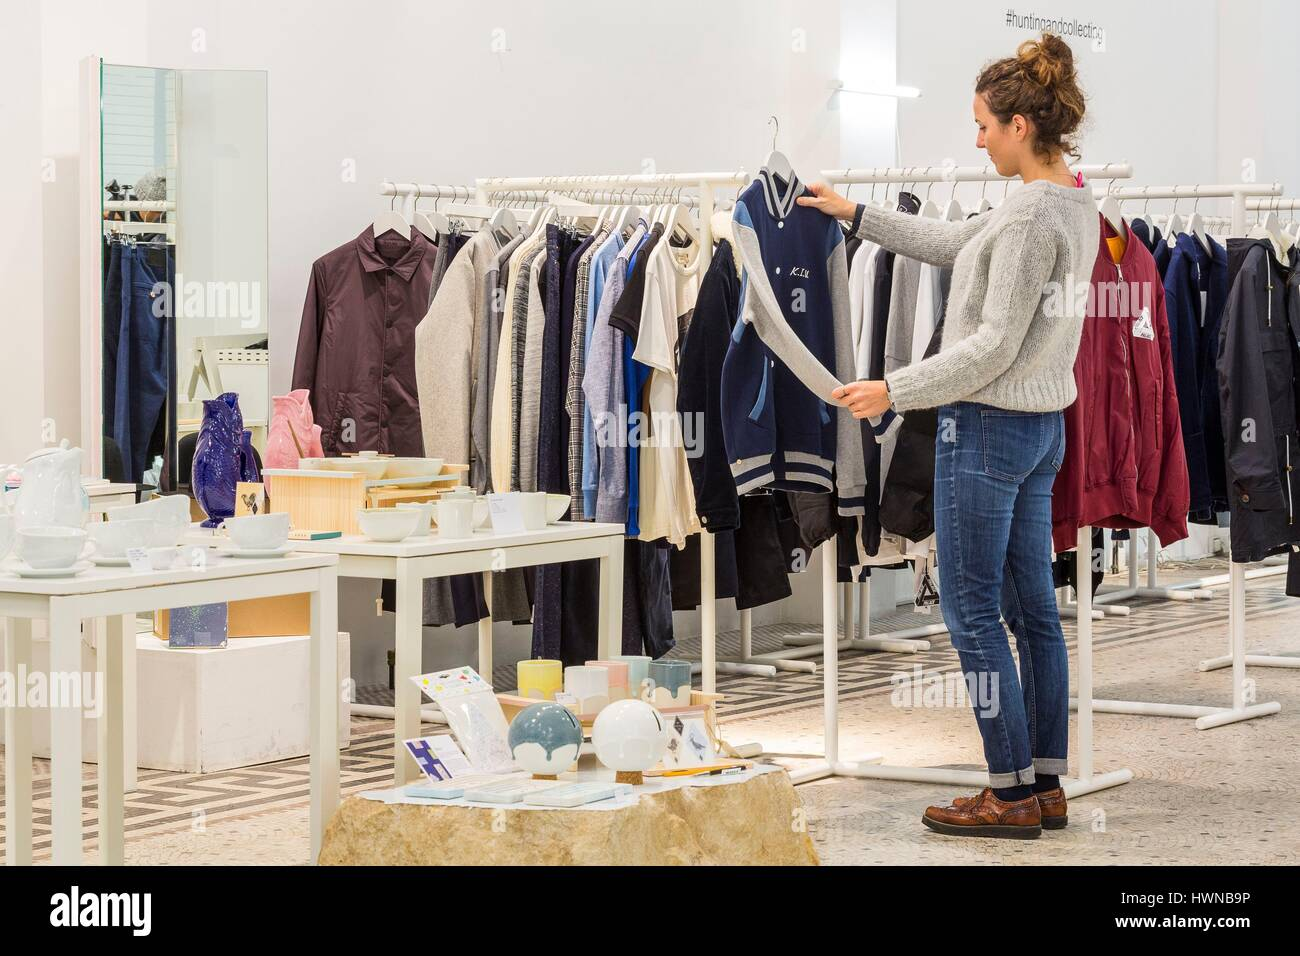 Belgium, Brussels, Dansaert district, Rue des Chartreux, concept store Hunting and Collecting, fashion department - Stock Image